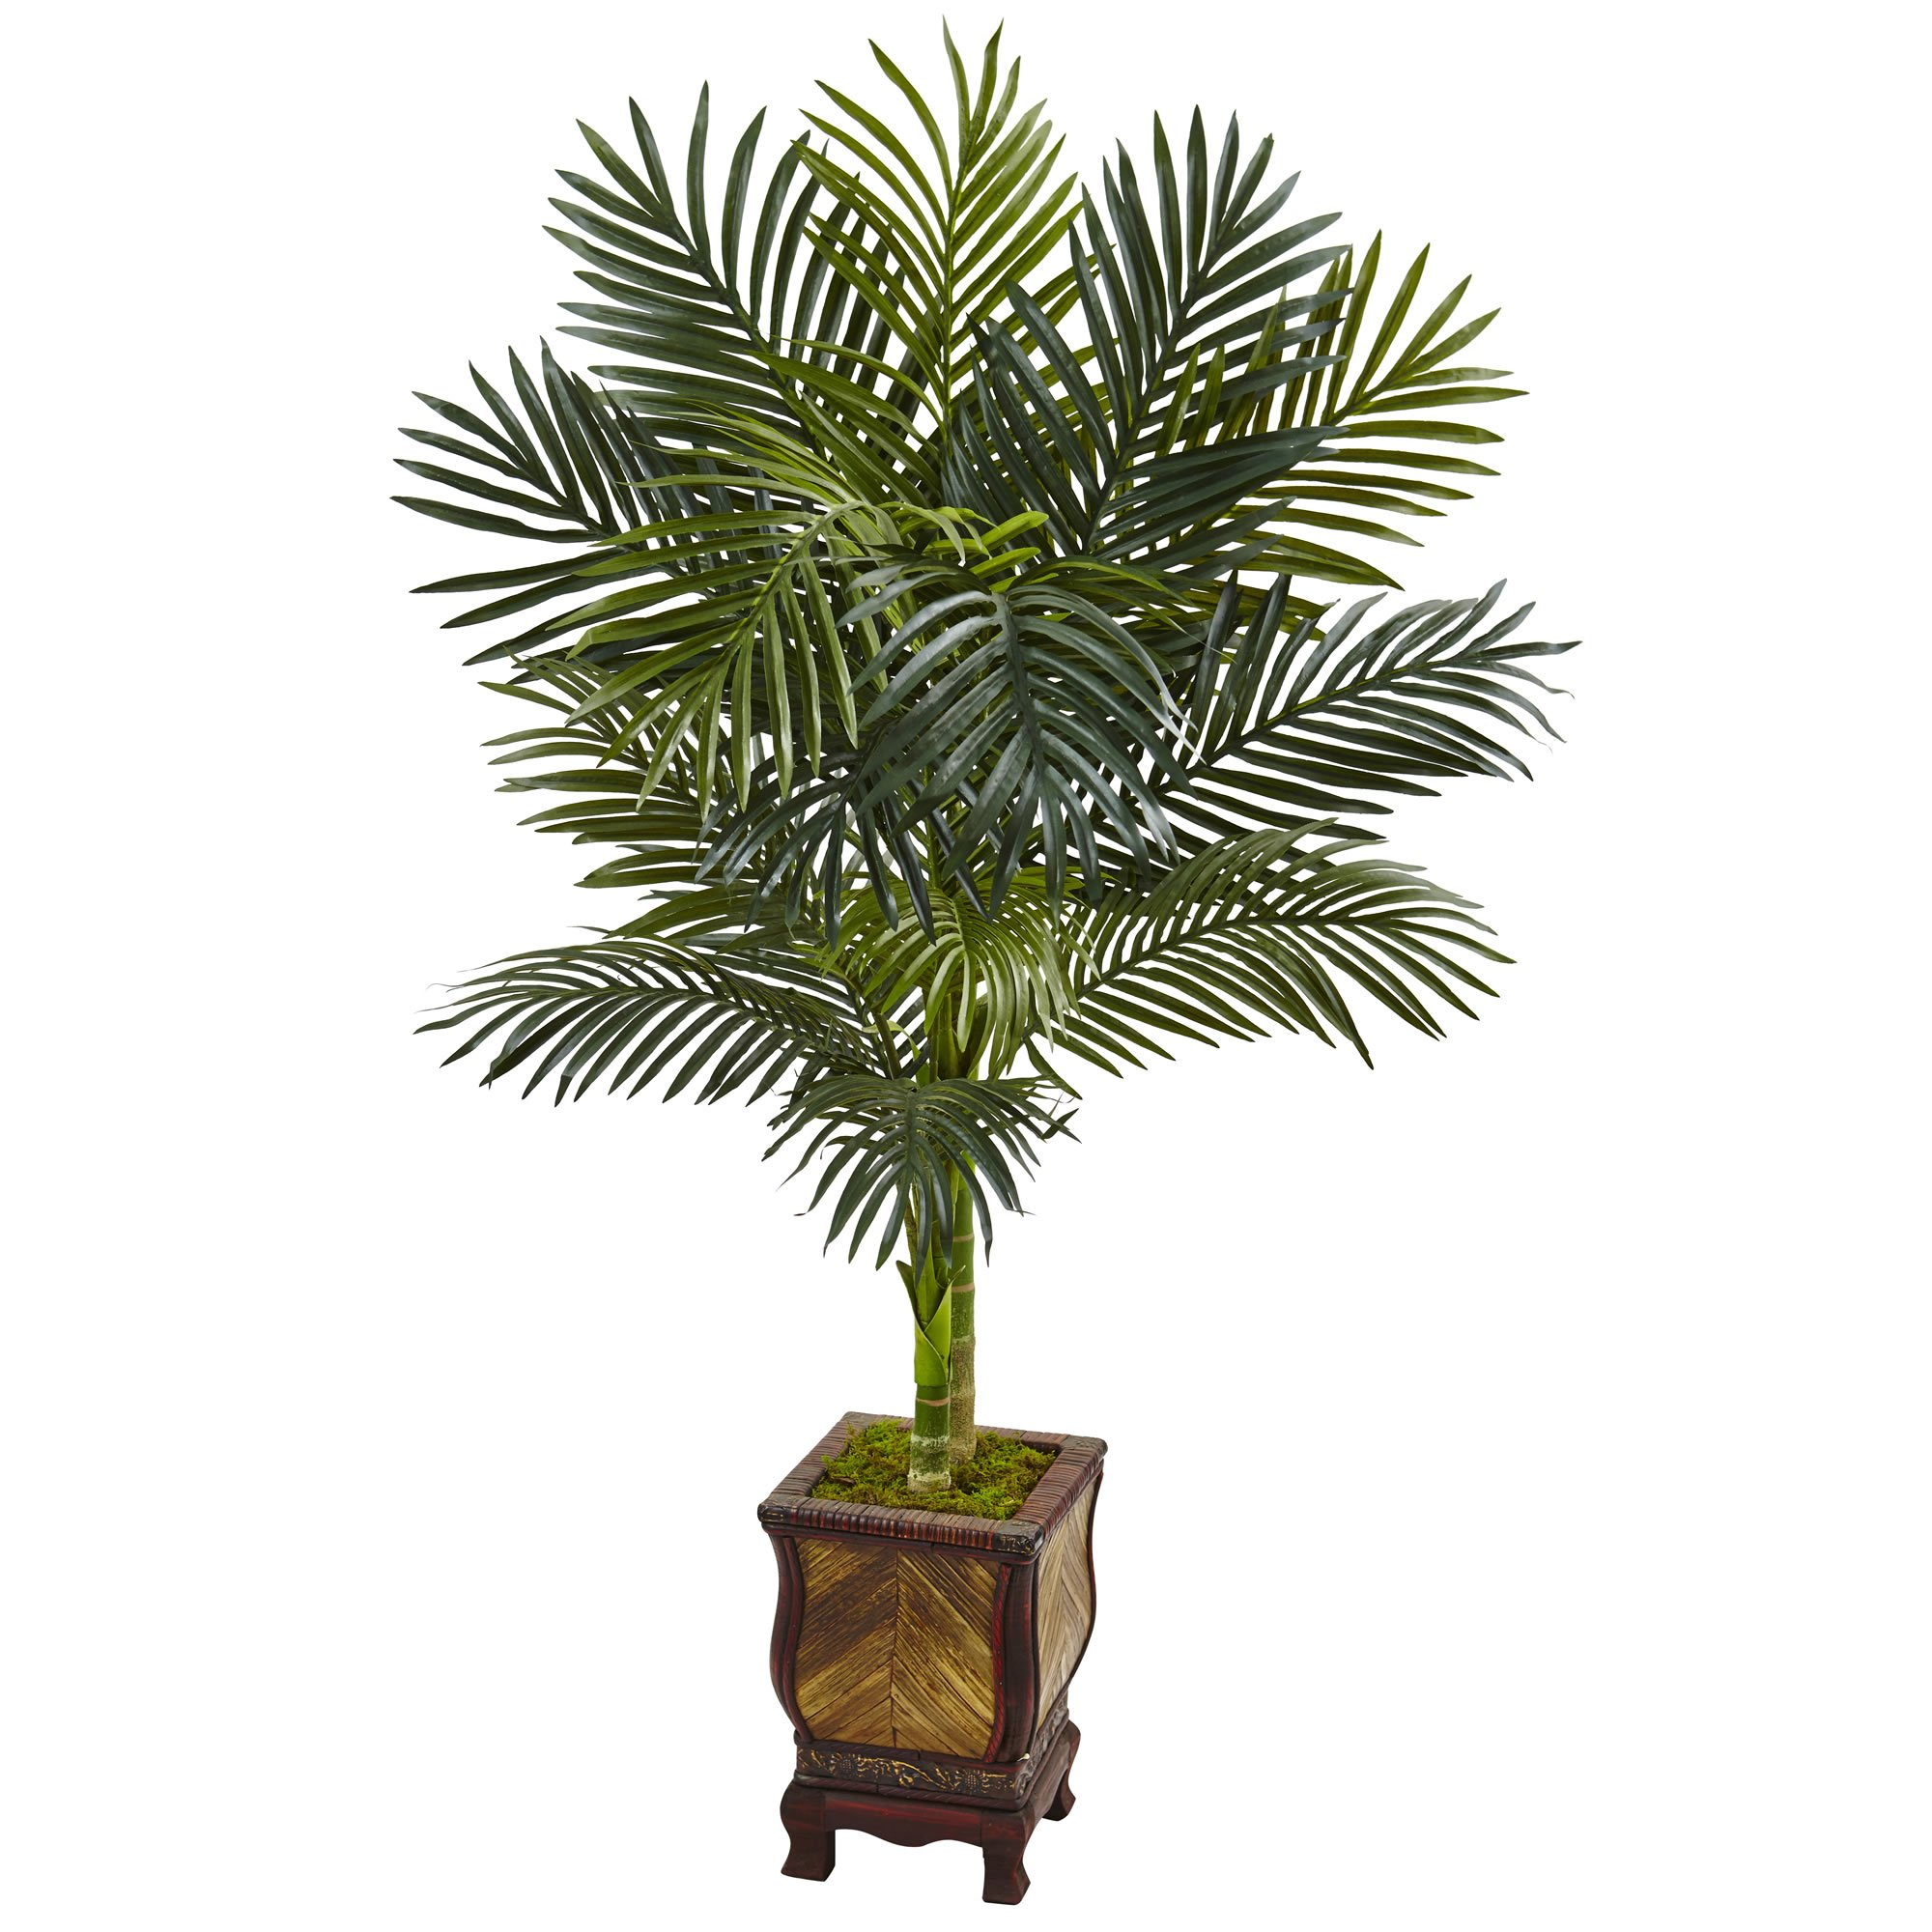 Artificial tree foot golden cane palm tree in wooden decorated